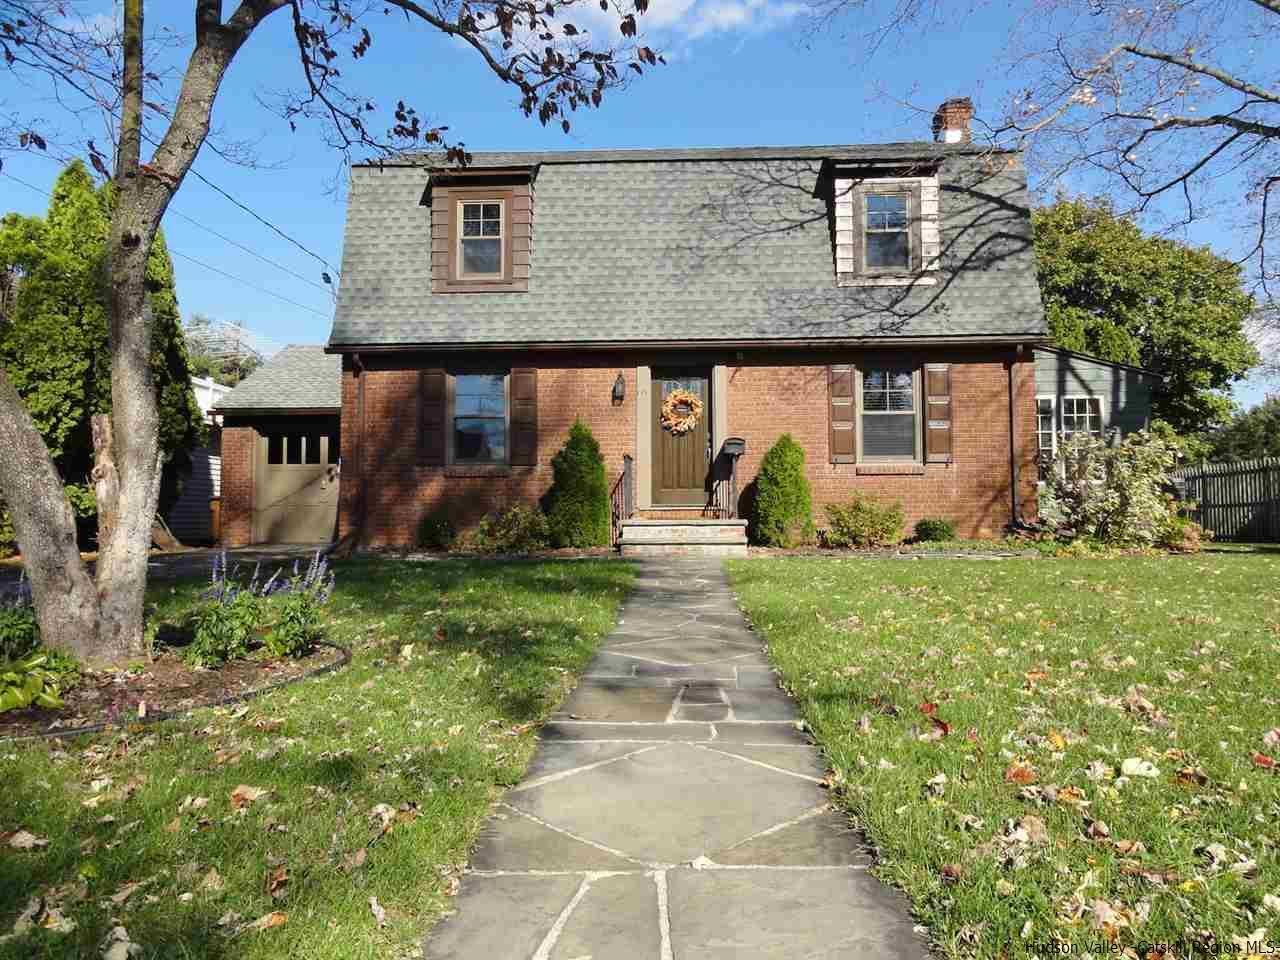 Single Family Home for Sale at 68 Wilson Avenue 68 Wilson Avenue Kingston, New York 12401 United States